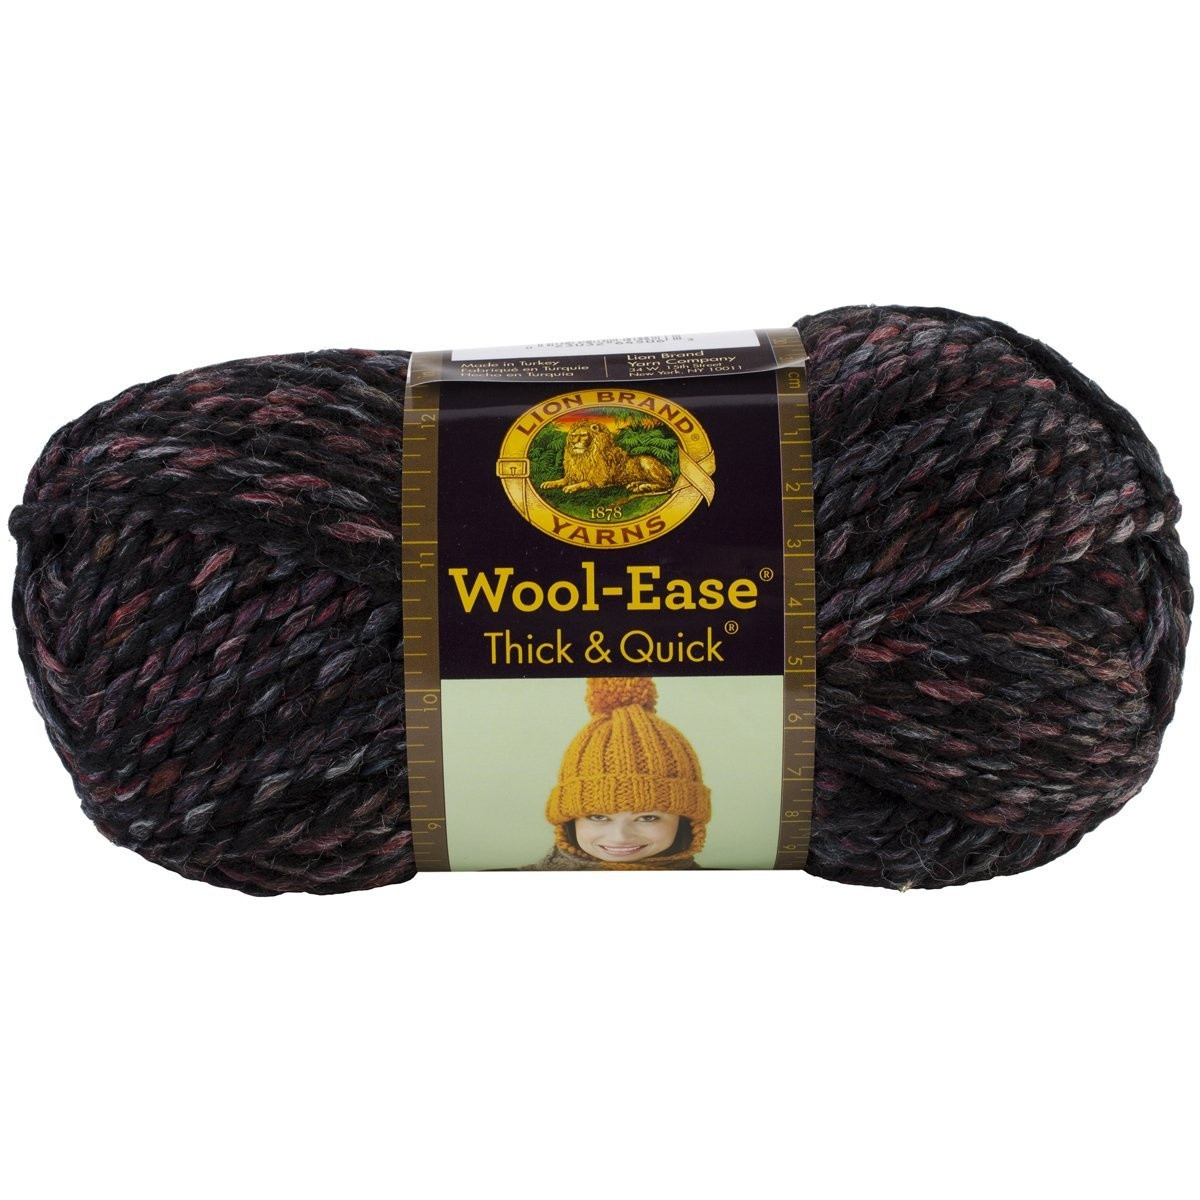 Lion Brand Wool Ease Inspirational Lion Brand Yarn 640 136f Wool Ease Thick and Quick Yarn Of Lion Brand Wool Ease Elegant Lion Brand Wool Ease Crochet Yarn & Wool